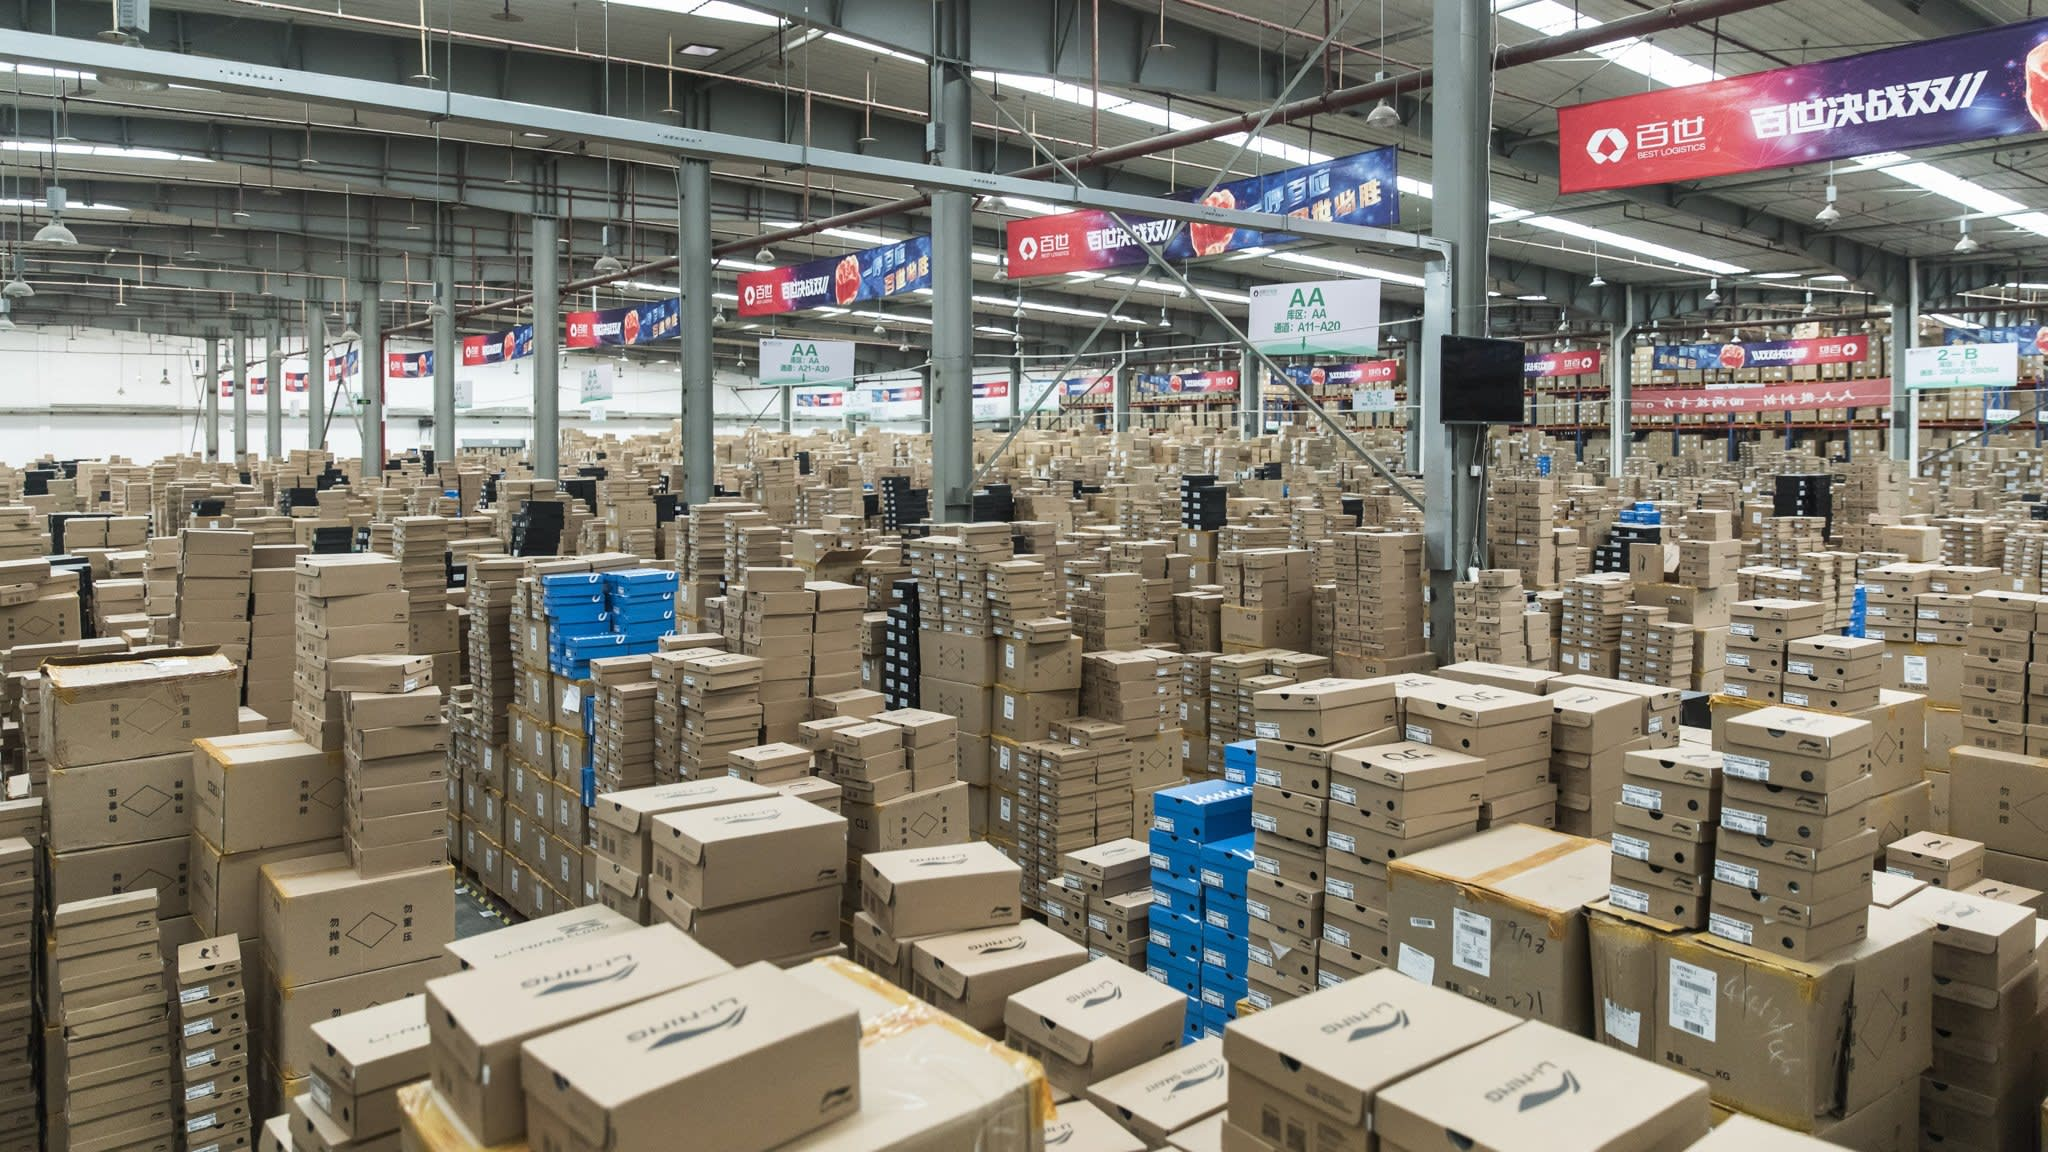 China ecommerce boom fires up logistics sector | Financial Times